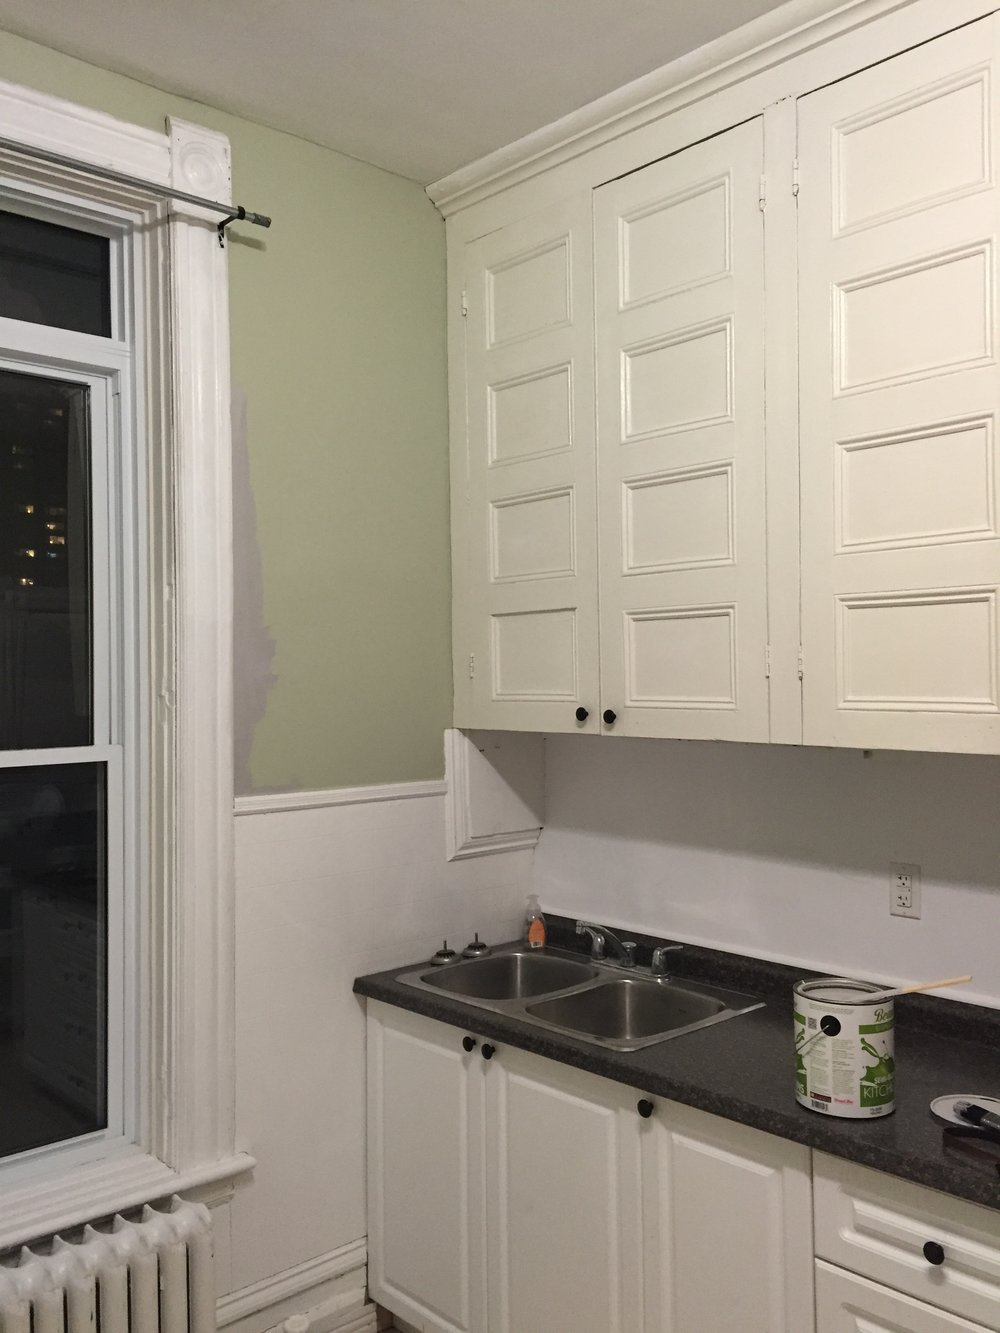 This is the only before image I have of my kitchen. I painted it grey when I moved in, and a year later, repainted it white. I love green, but I hate this green because I have too frequently seen it in hospitals and nursing homes. Plain palettes with layers of intense colour and natural materials can really age well.